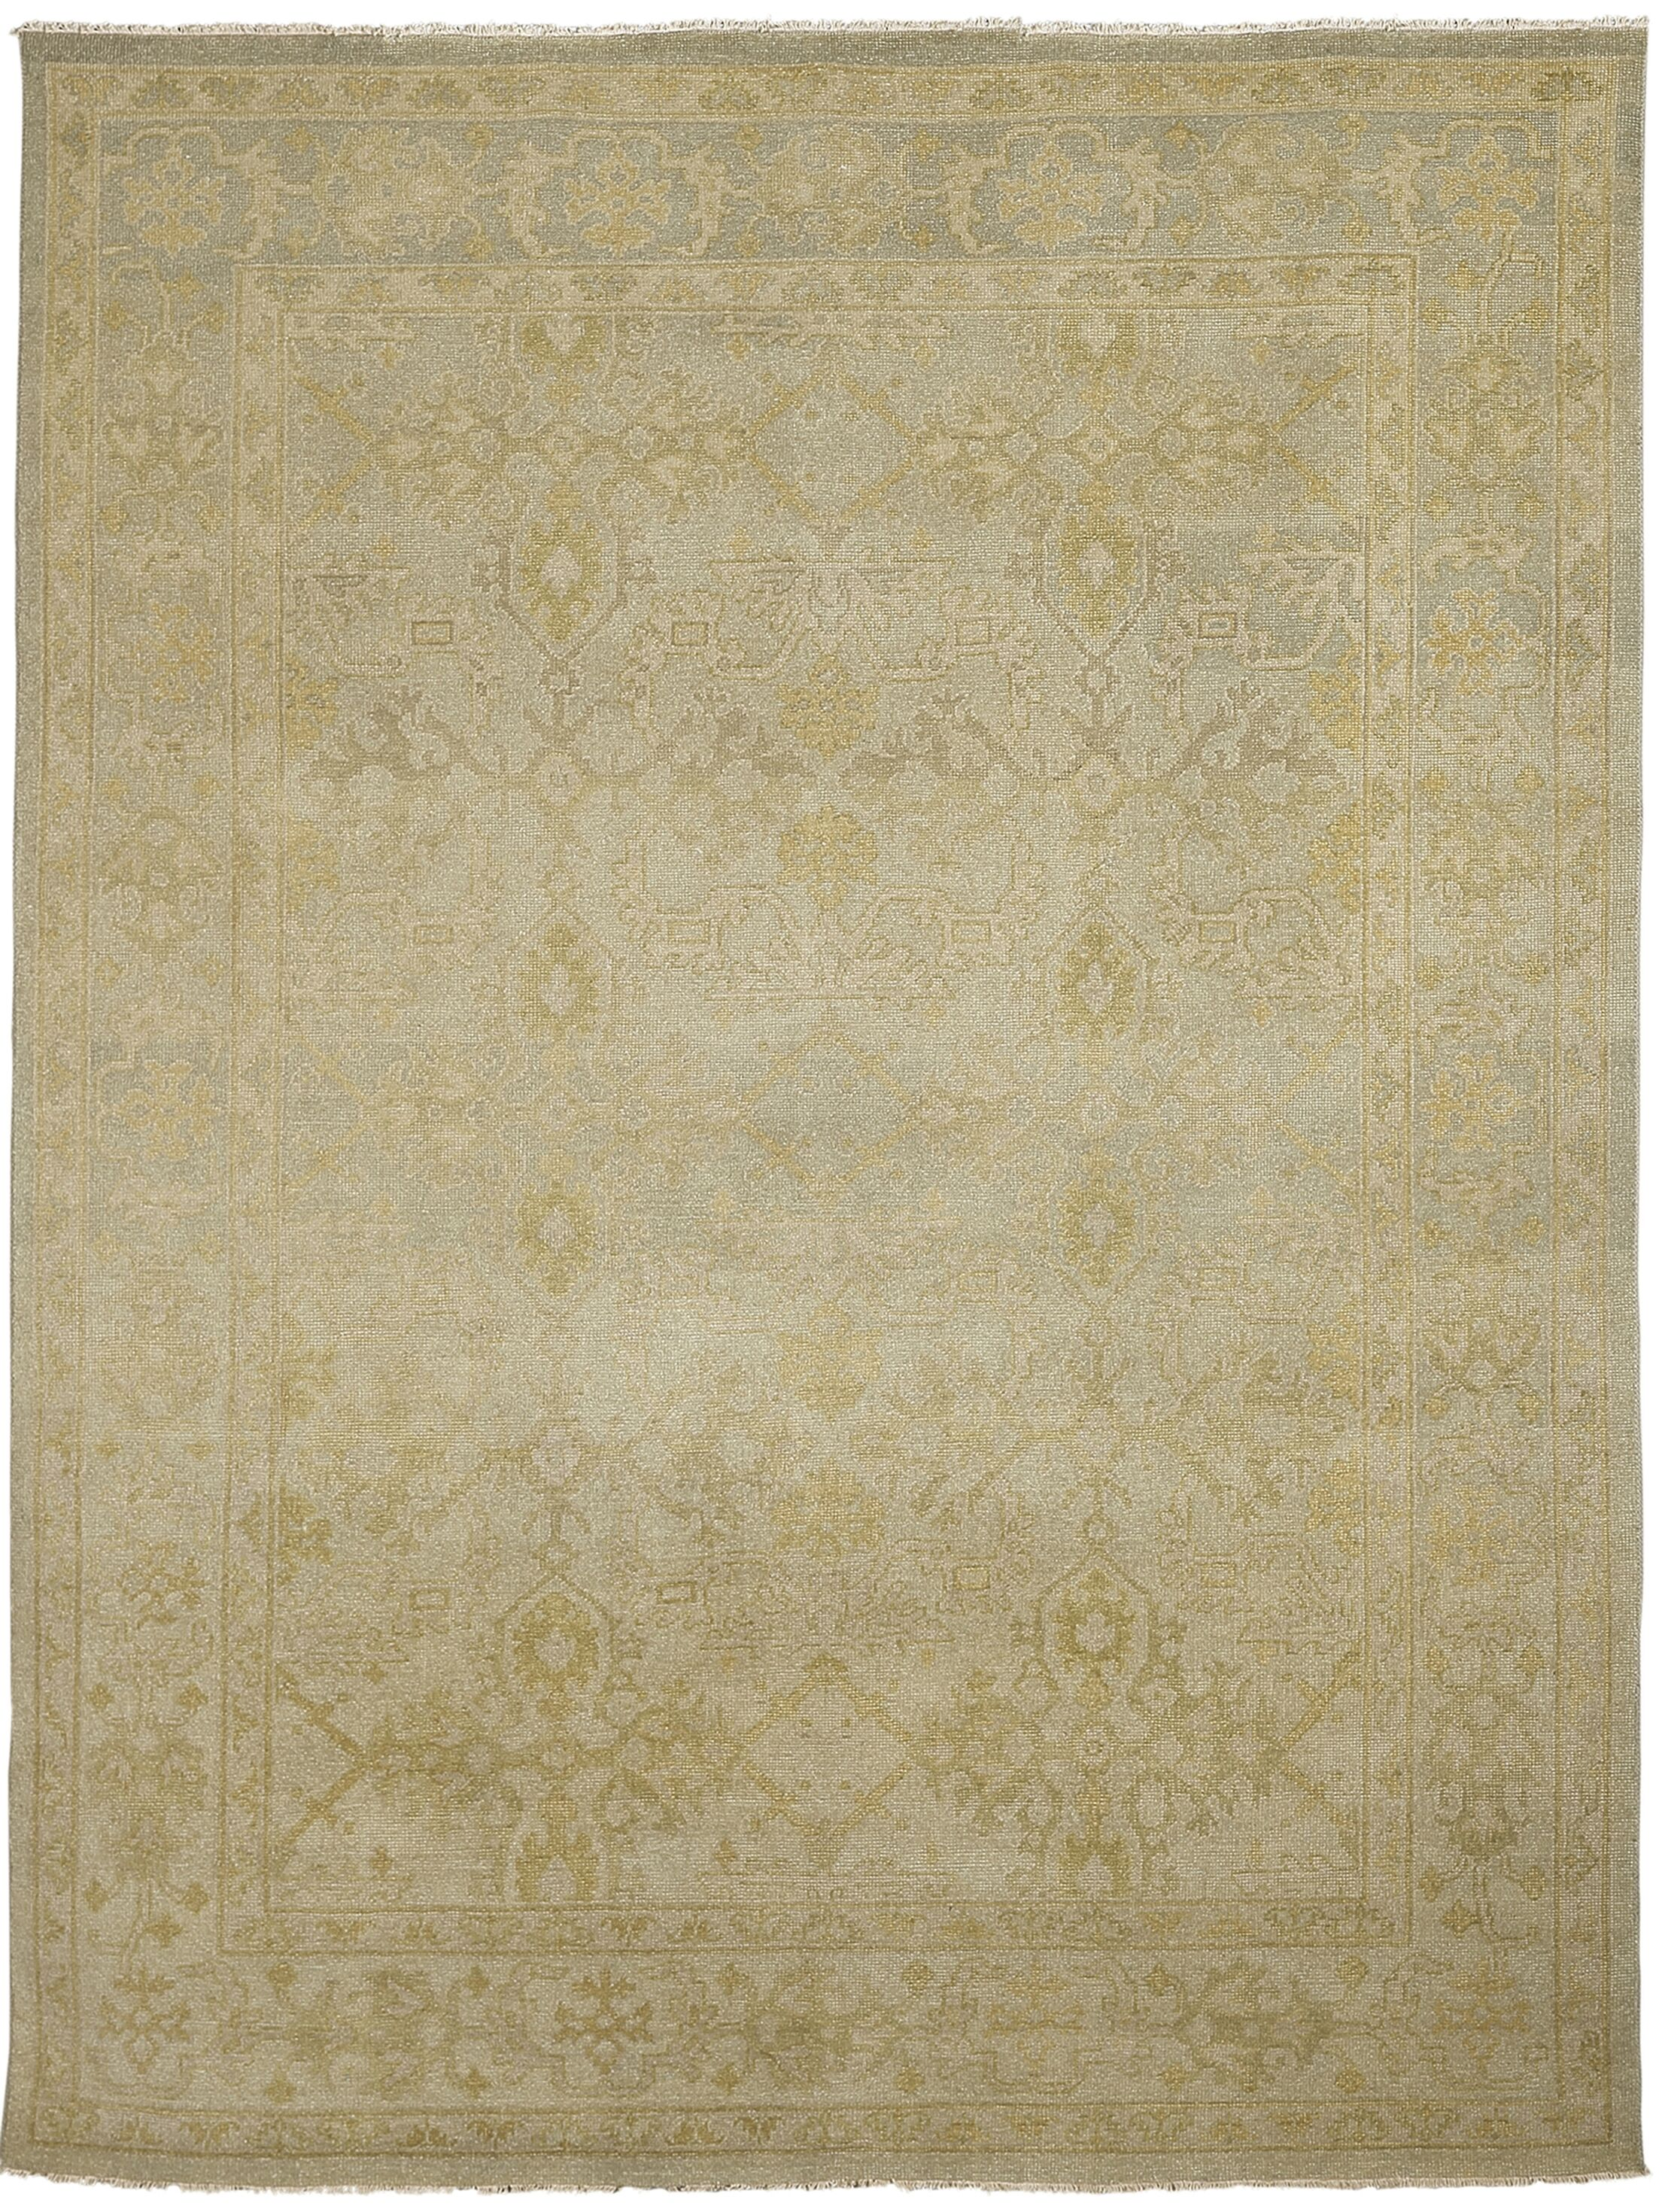 Blackwell Patara Light Green Area Rug Rug Size: 8' x 10'